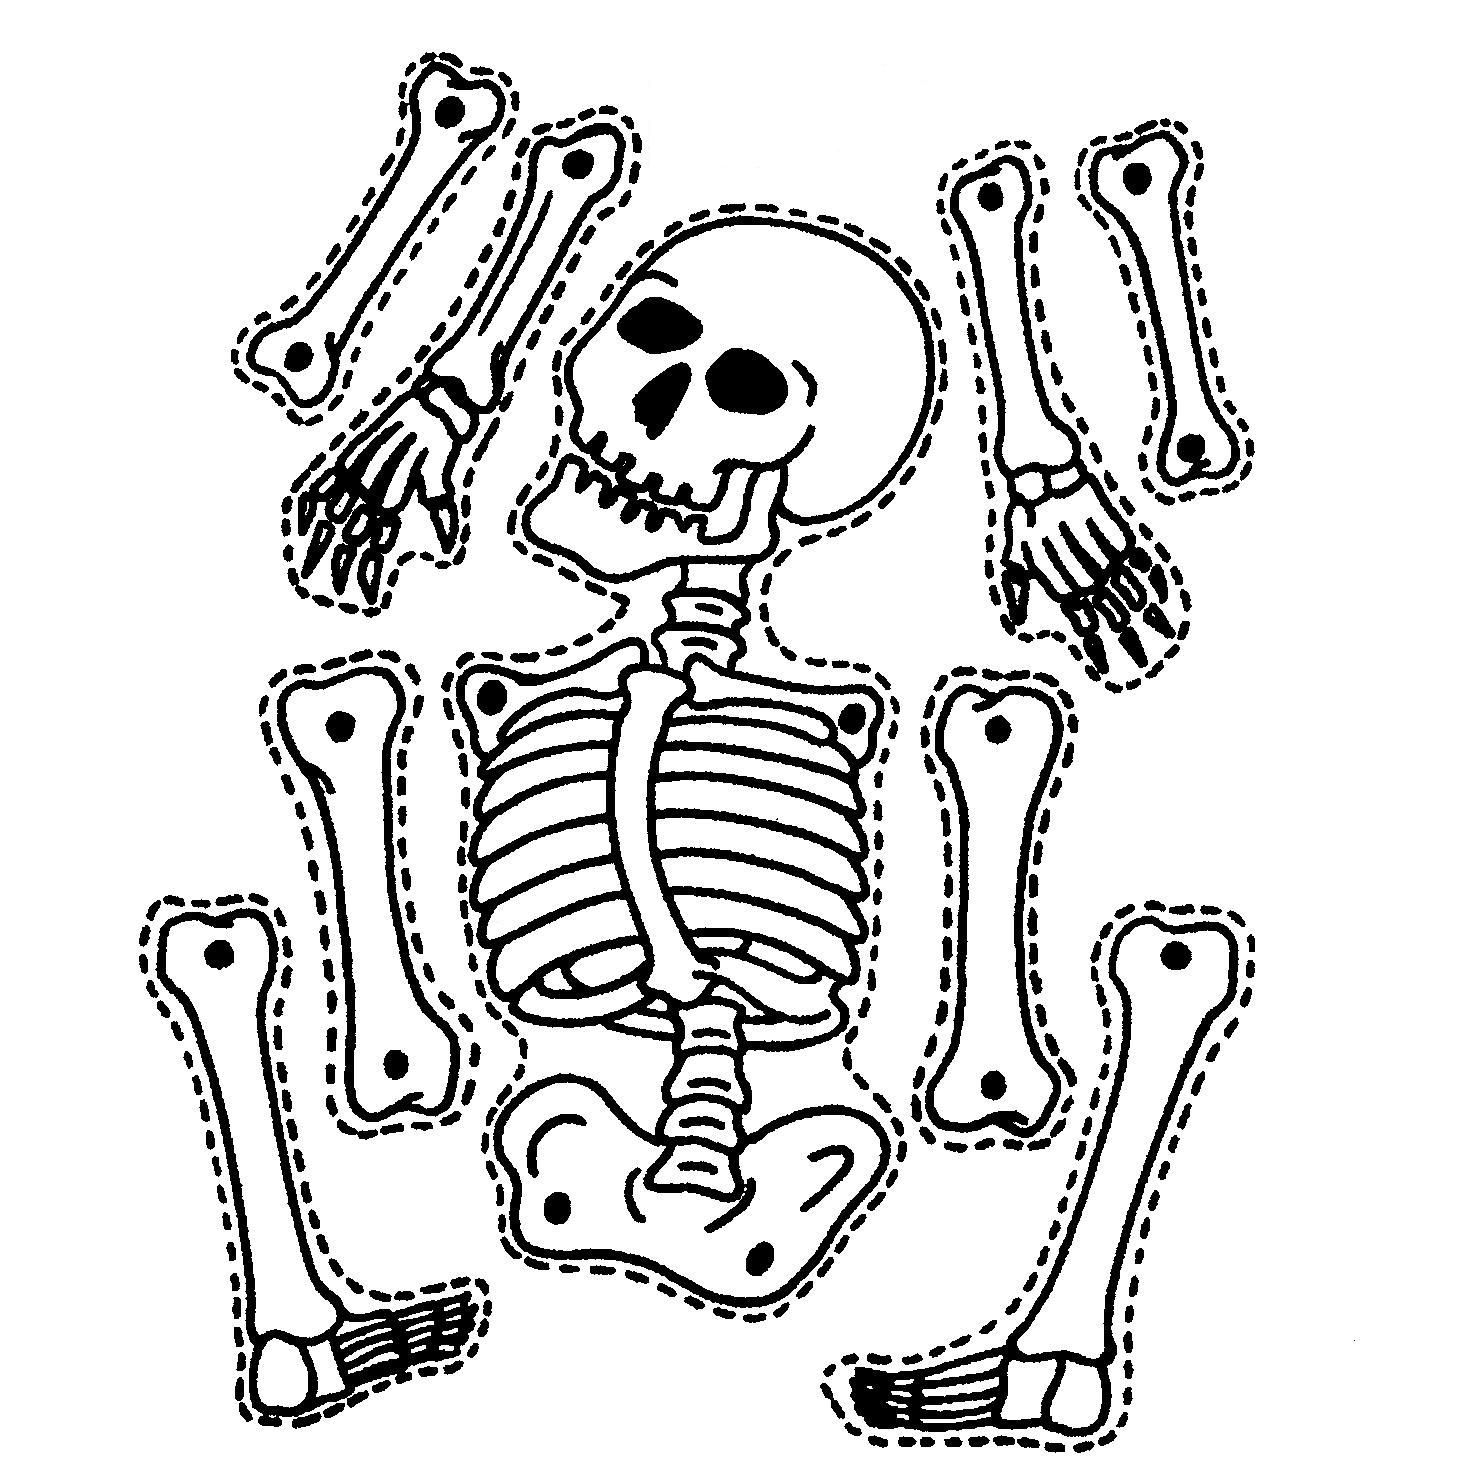 dz doodles digital stamps box within a box and mechanical skeleton clipart - Halloween Skeleton Coloring Pages